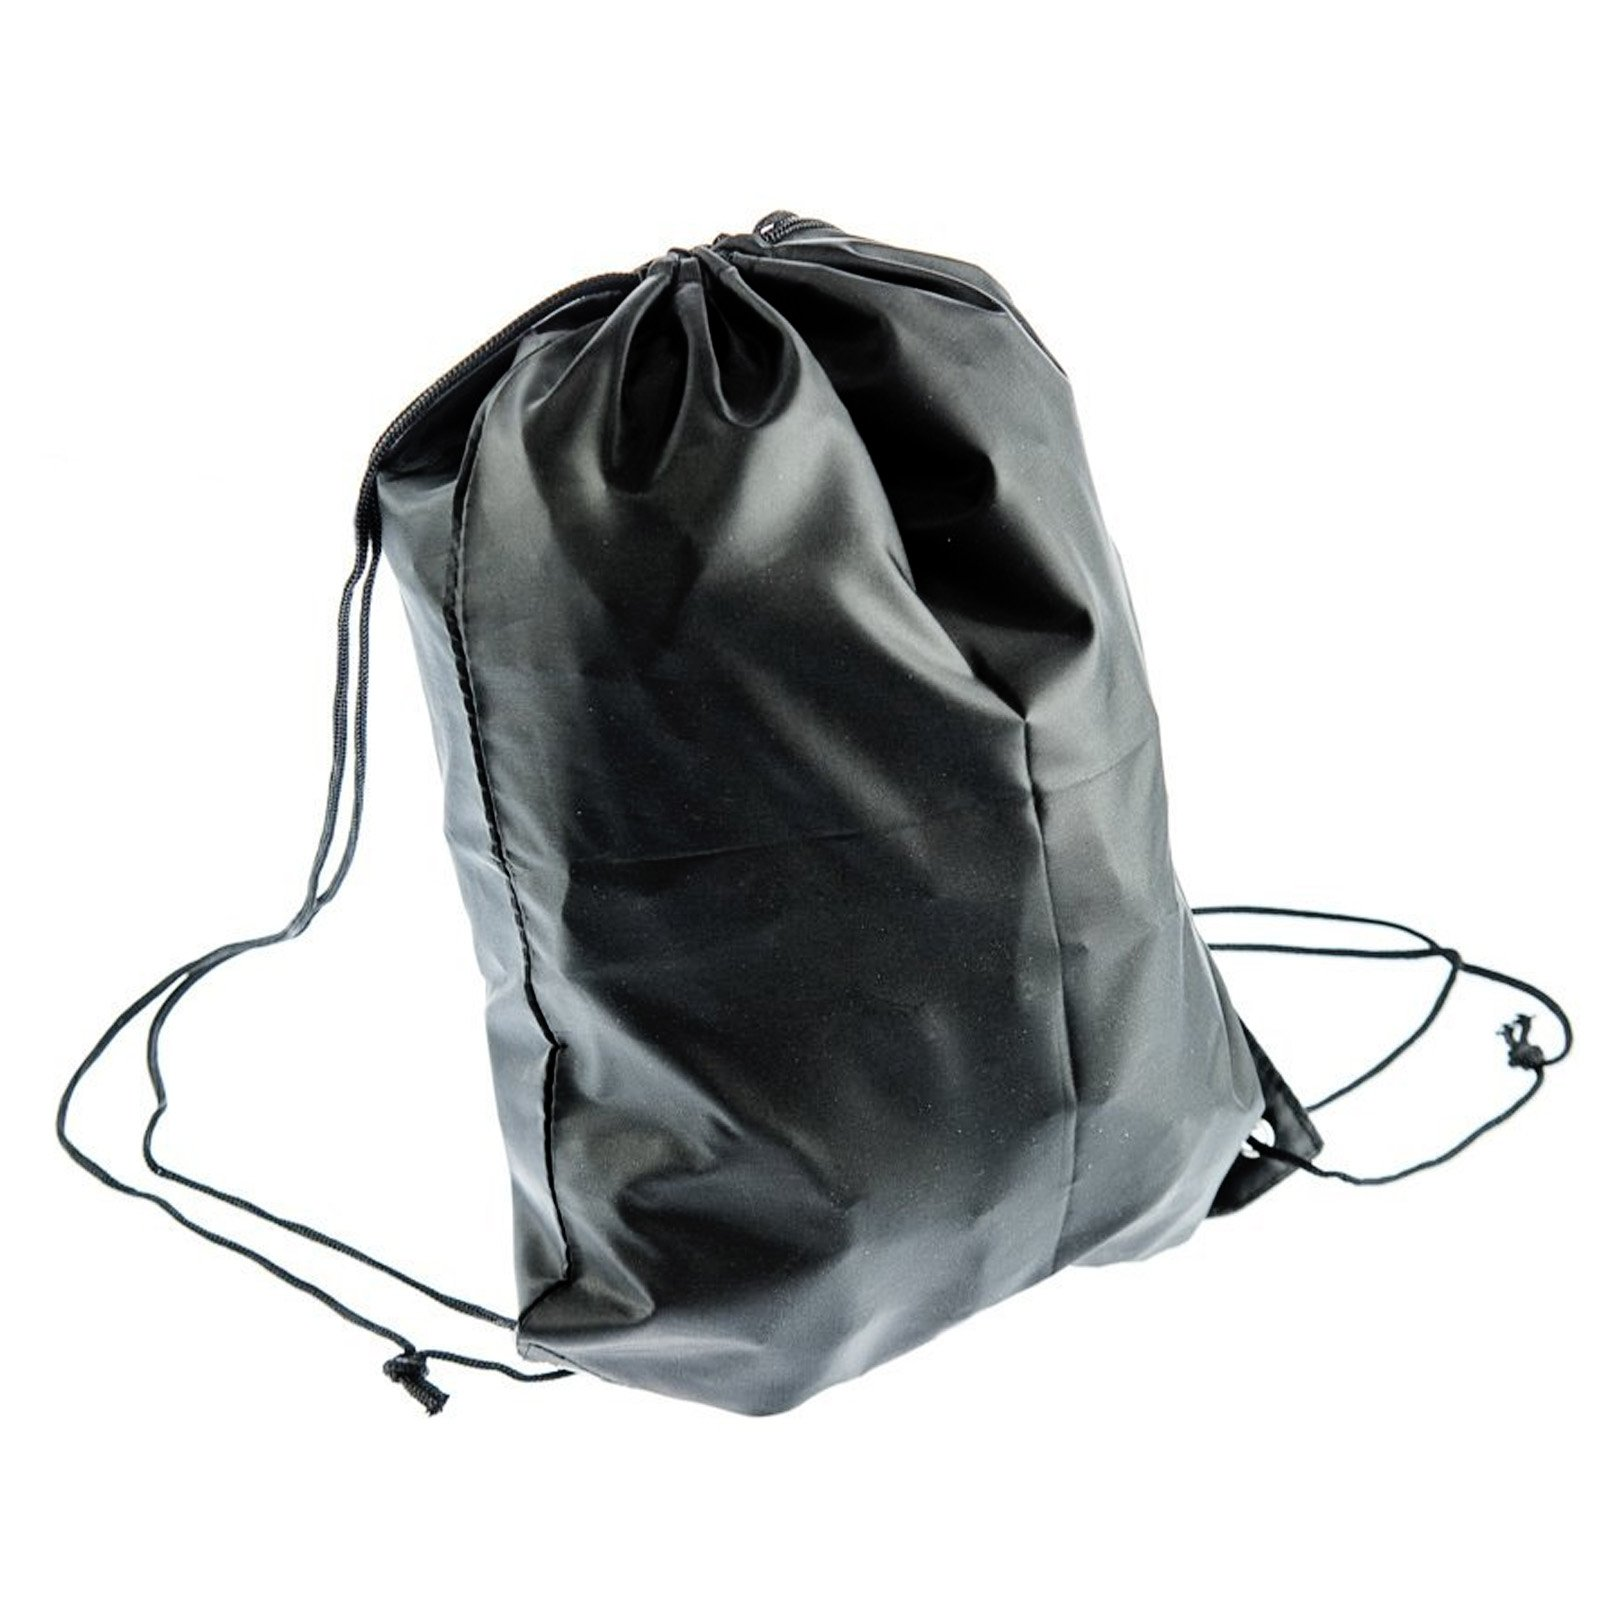 black drawstring multipurpose grommet for security with cinch stopper